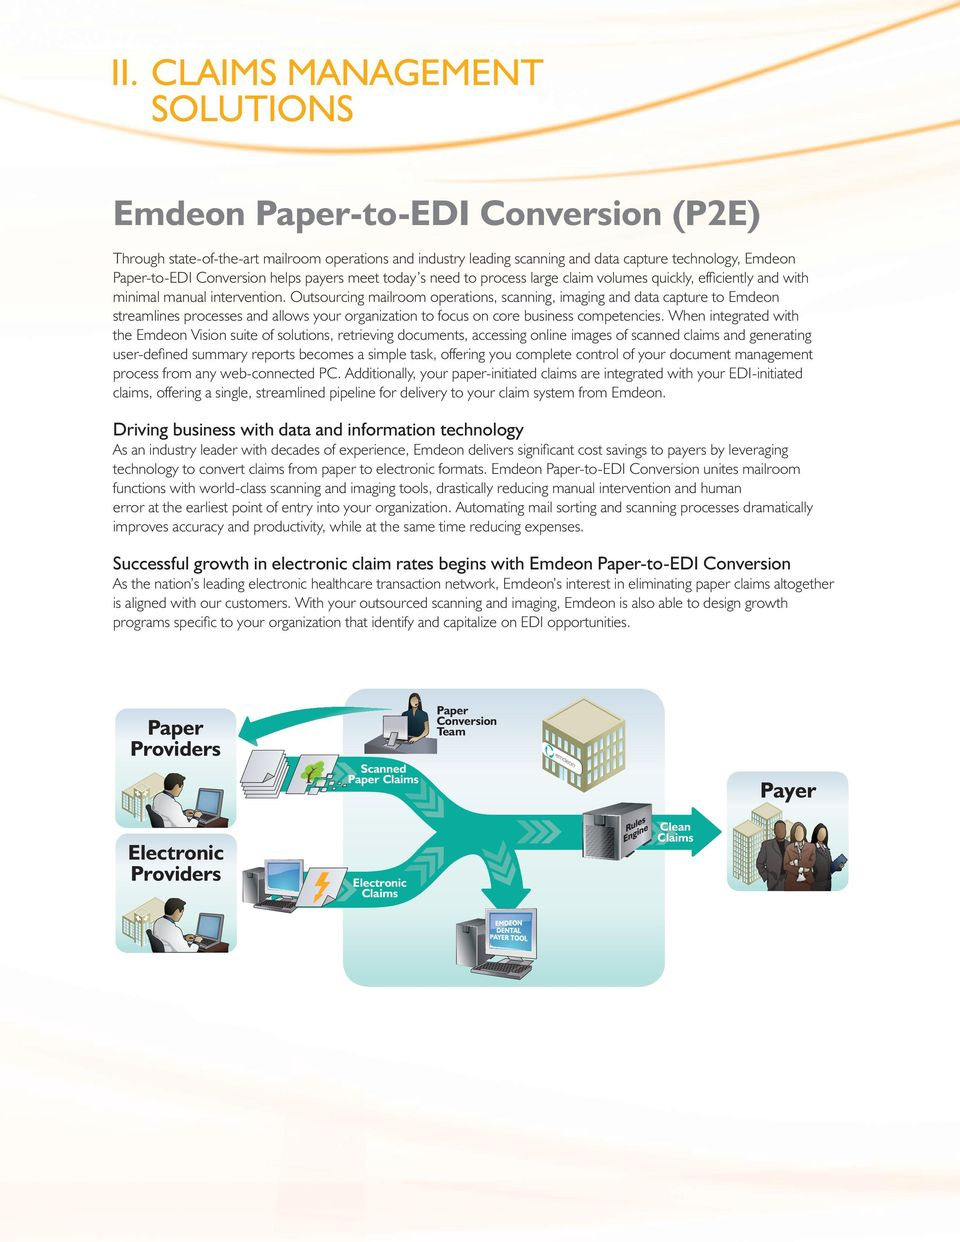 Outsourcing mailroom operations, scanning, imaging and data capture to Emdeon streamlines processes and allows your organization to focus on core business competencies.